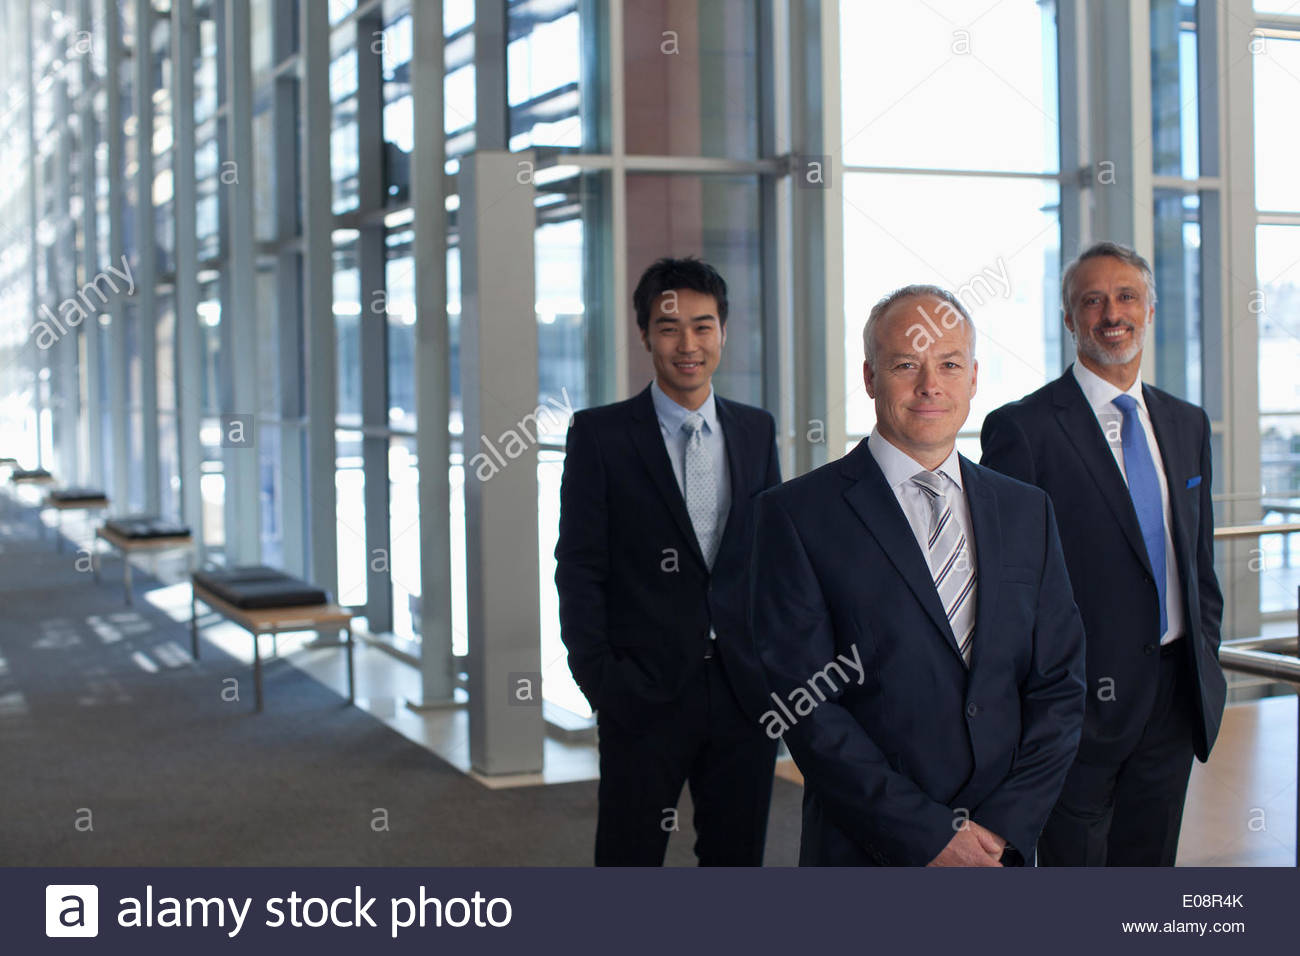 Business people in office lobby Photo Stock